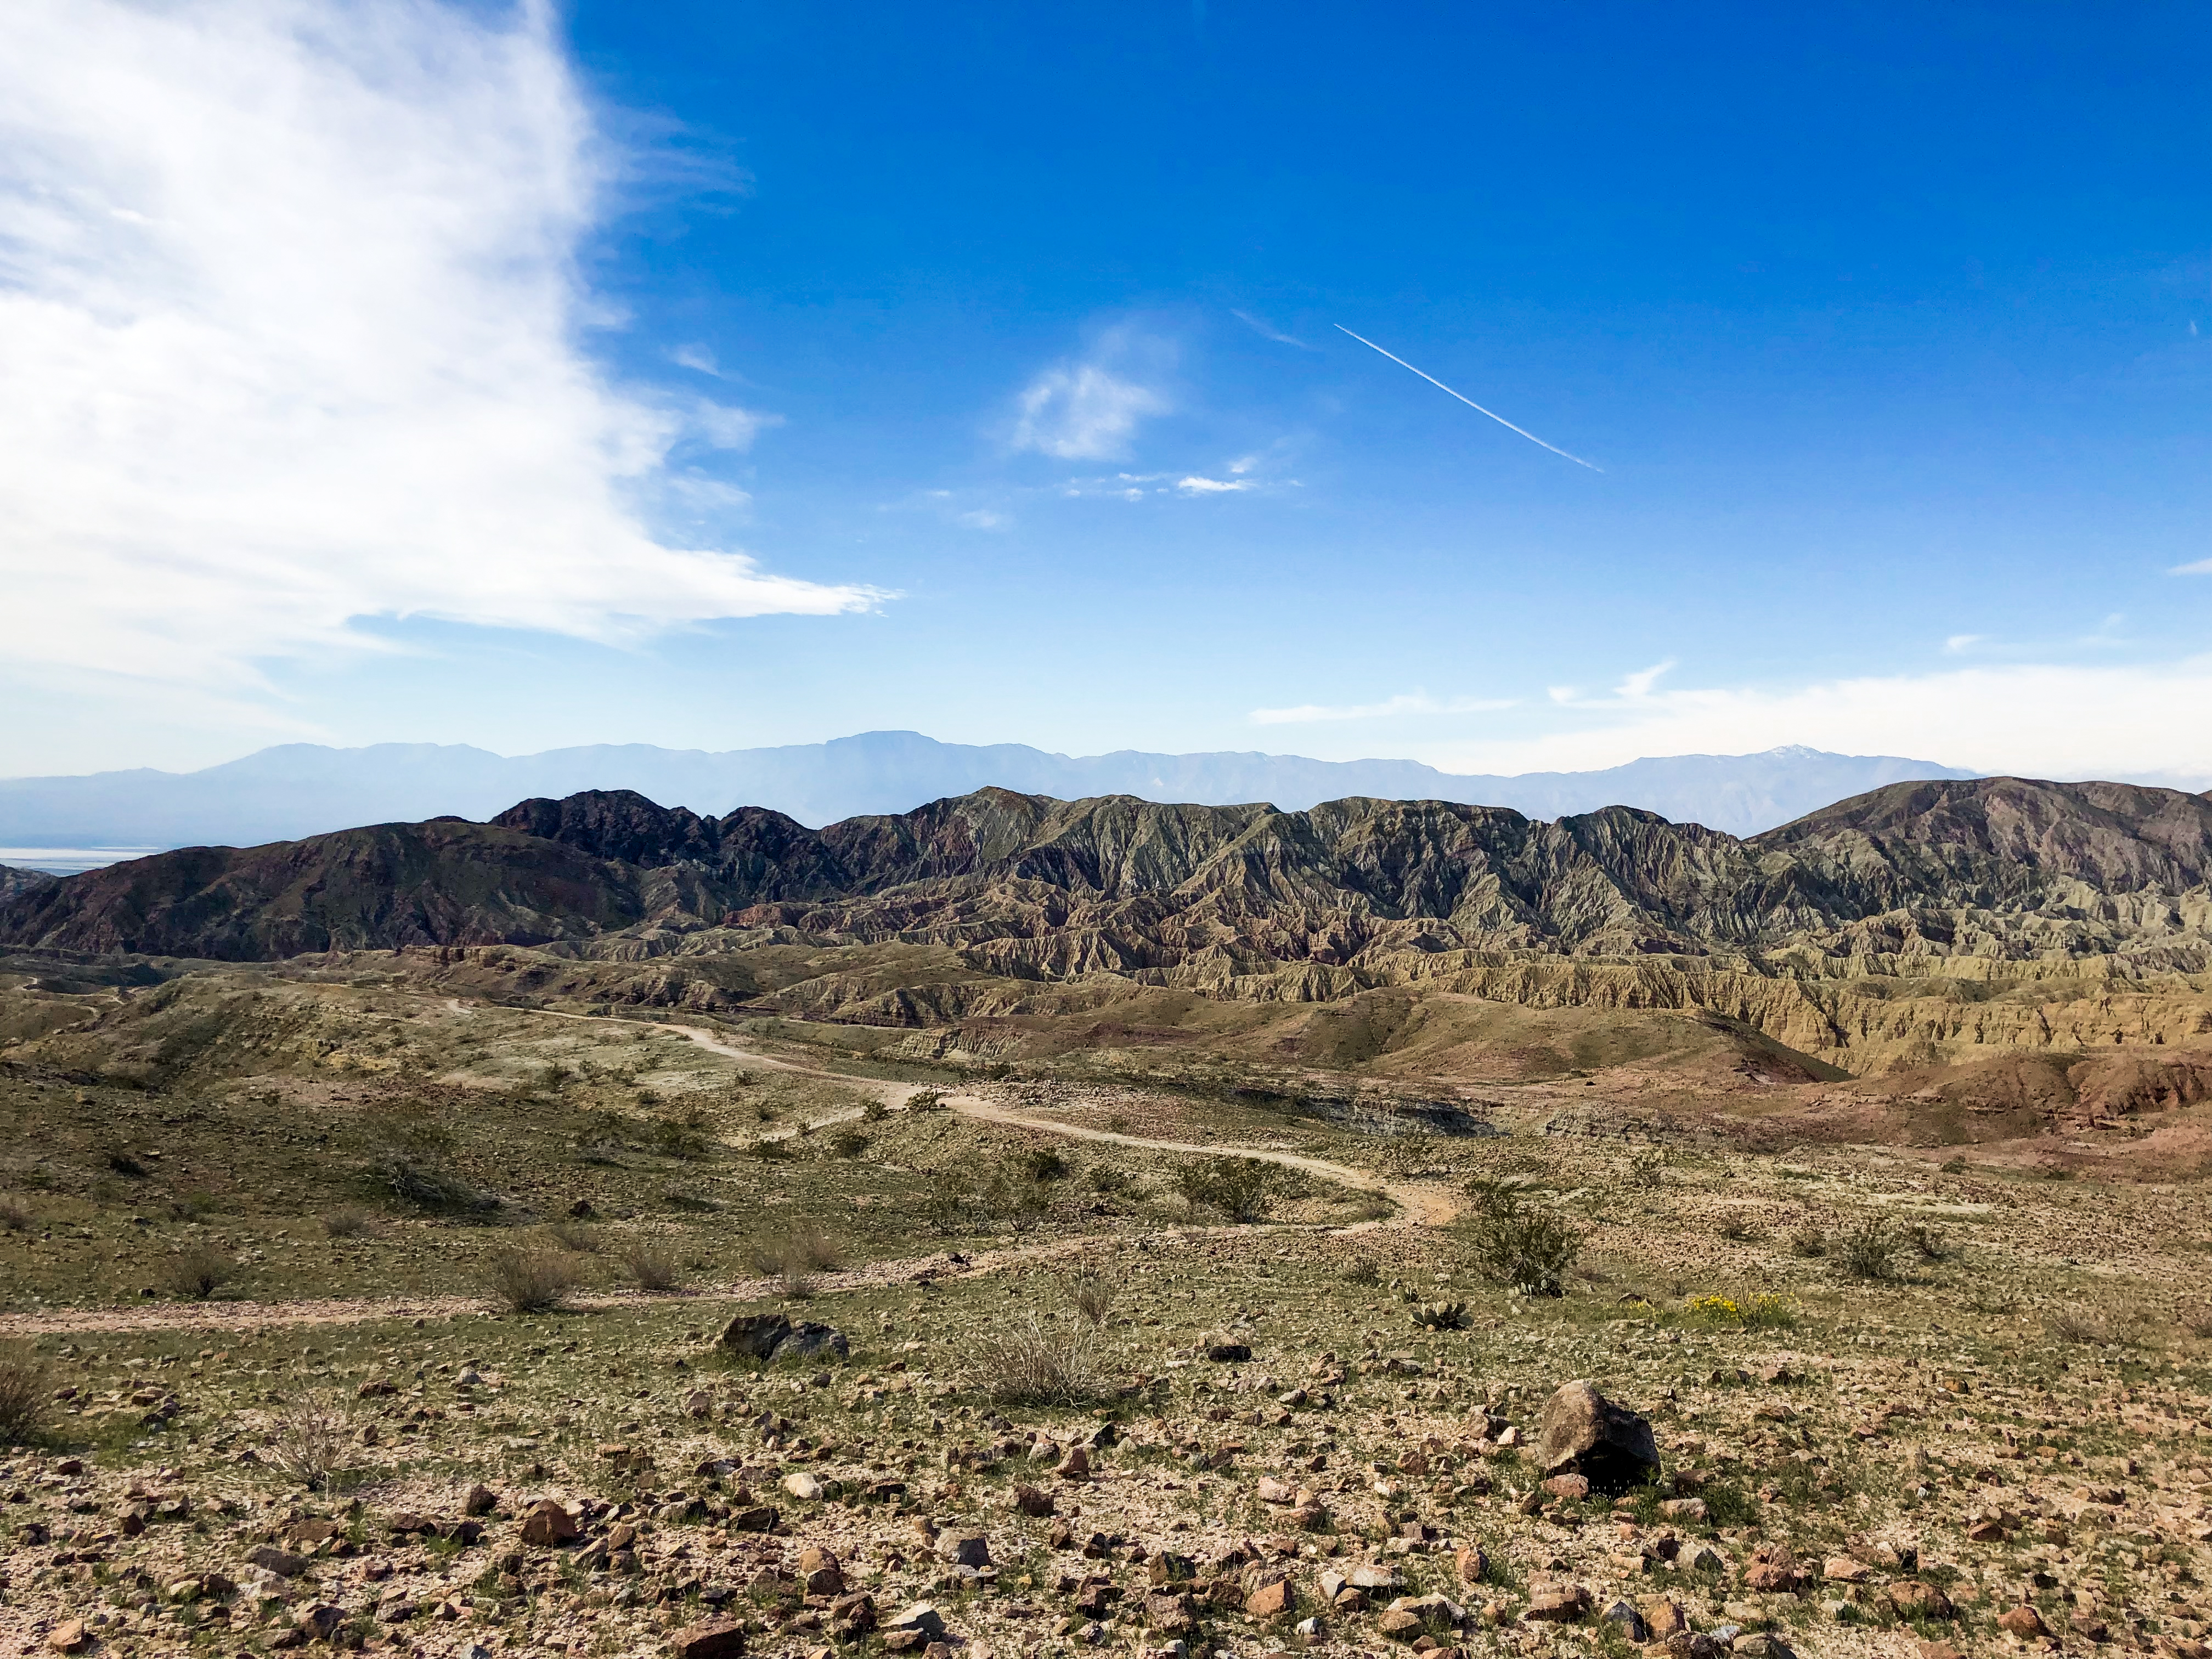 Looking over Painted Canyon, southeast of Palm Springs, California